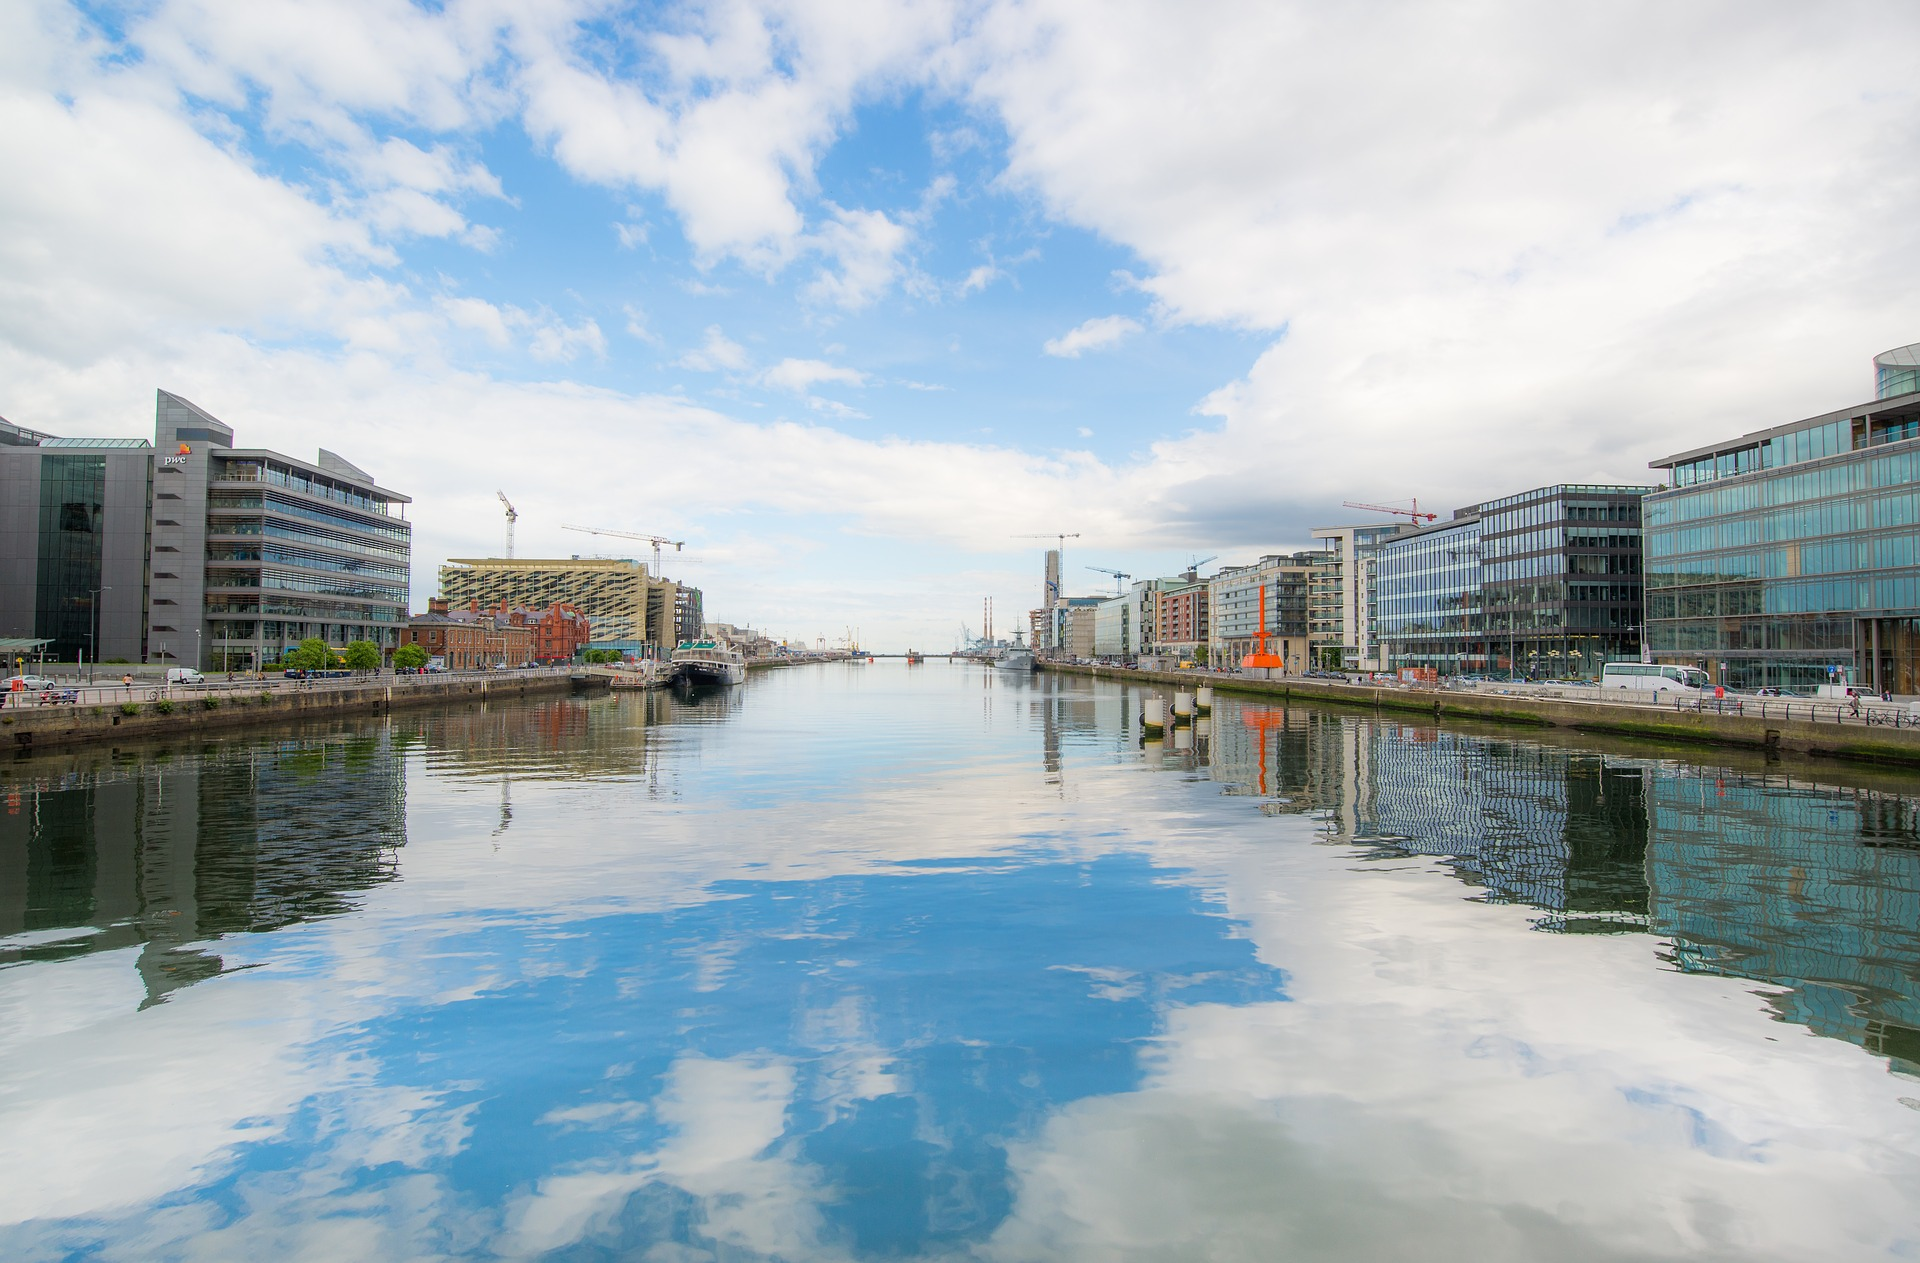 An image of the River Liffey in Dublin, Ireland